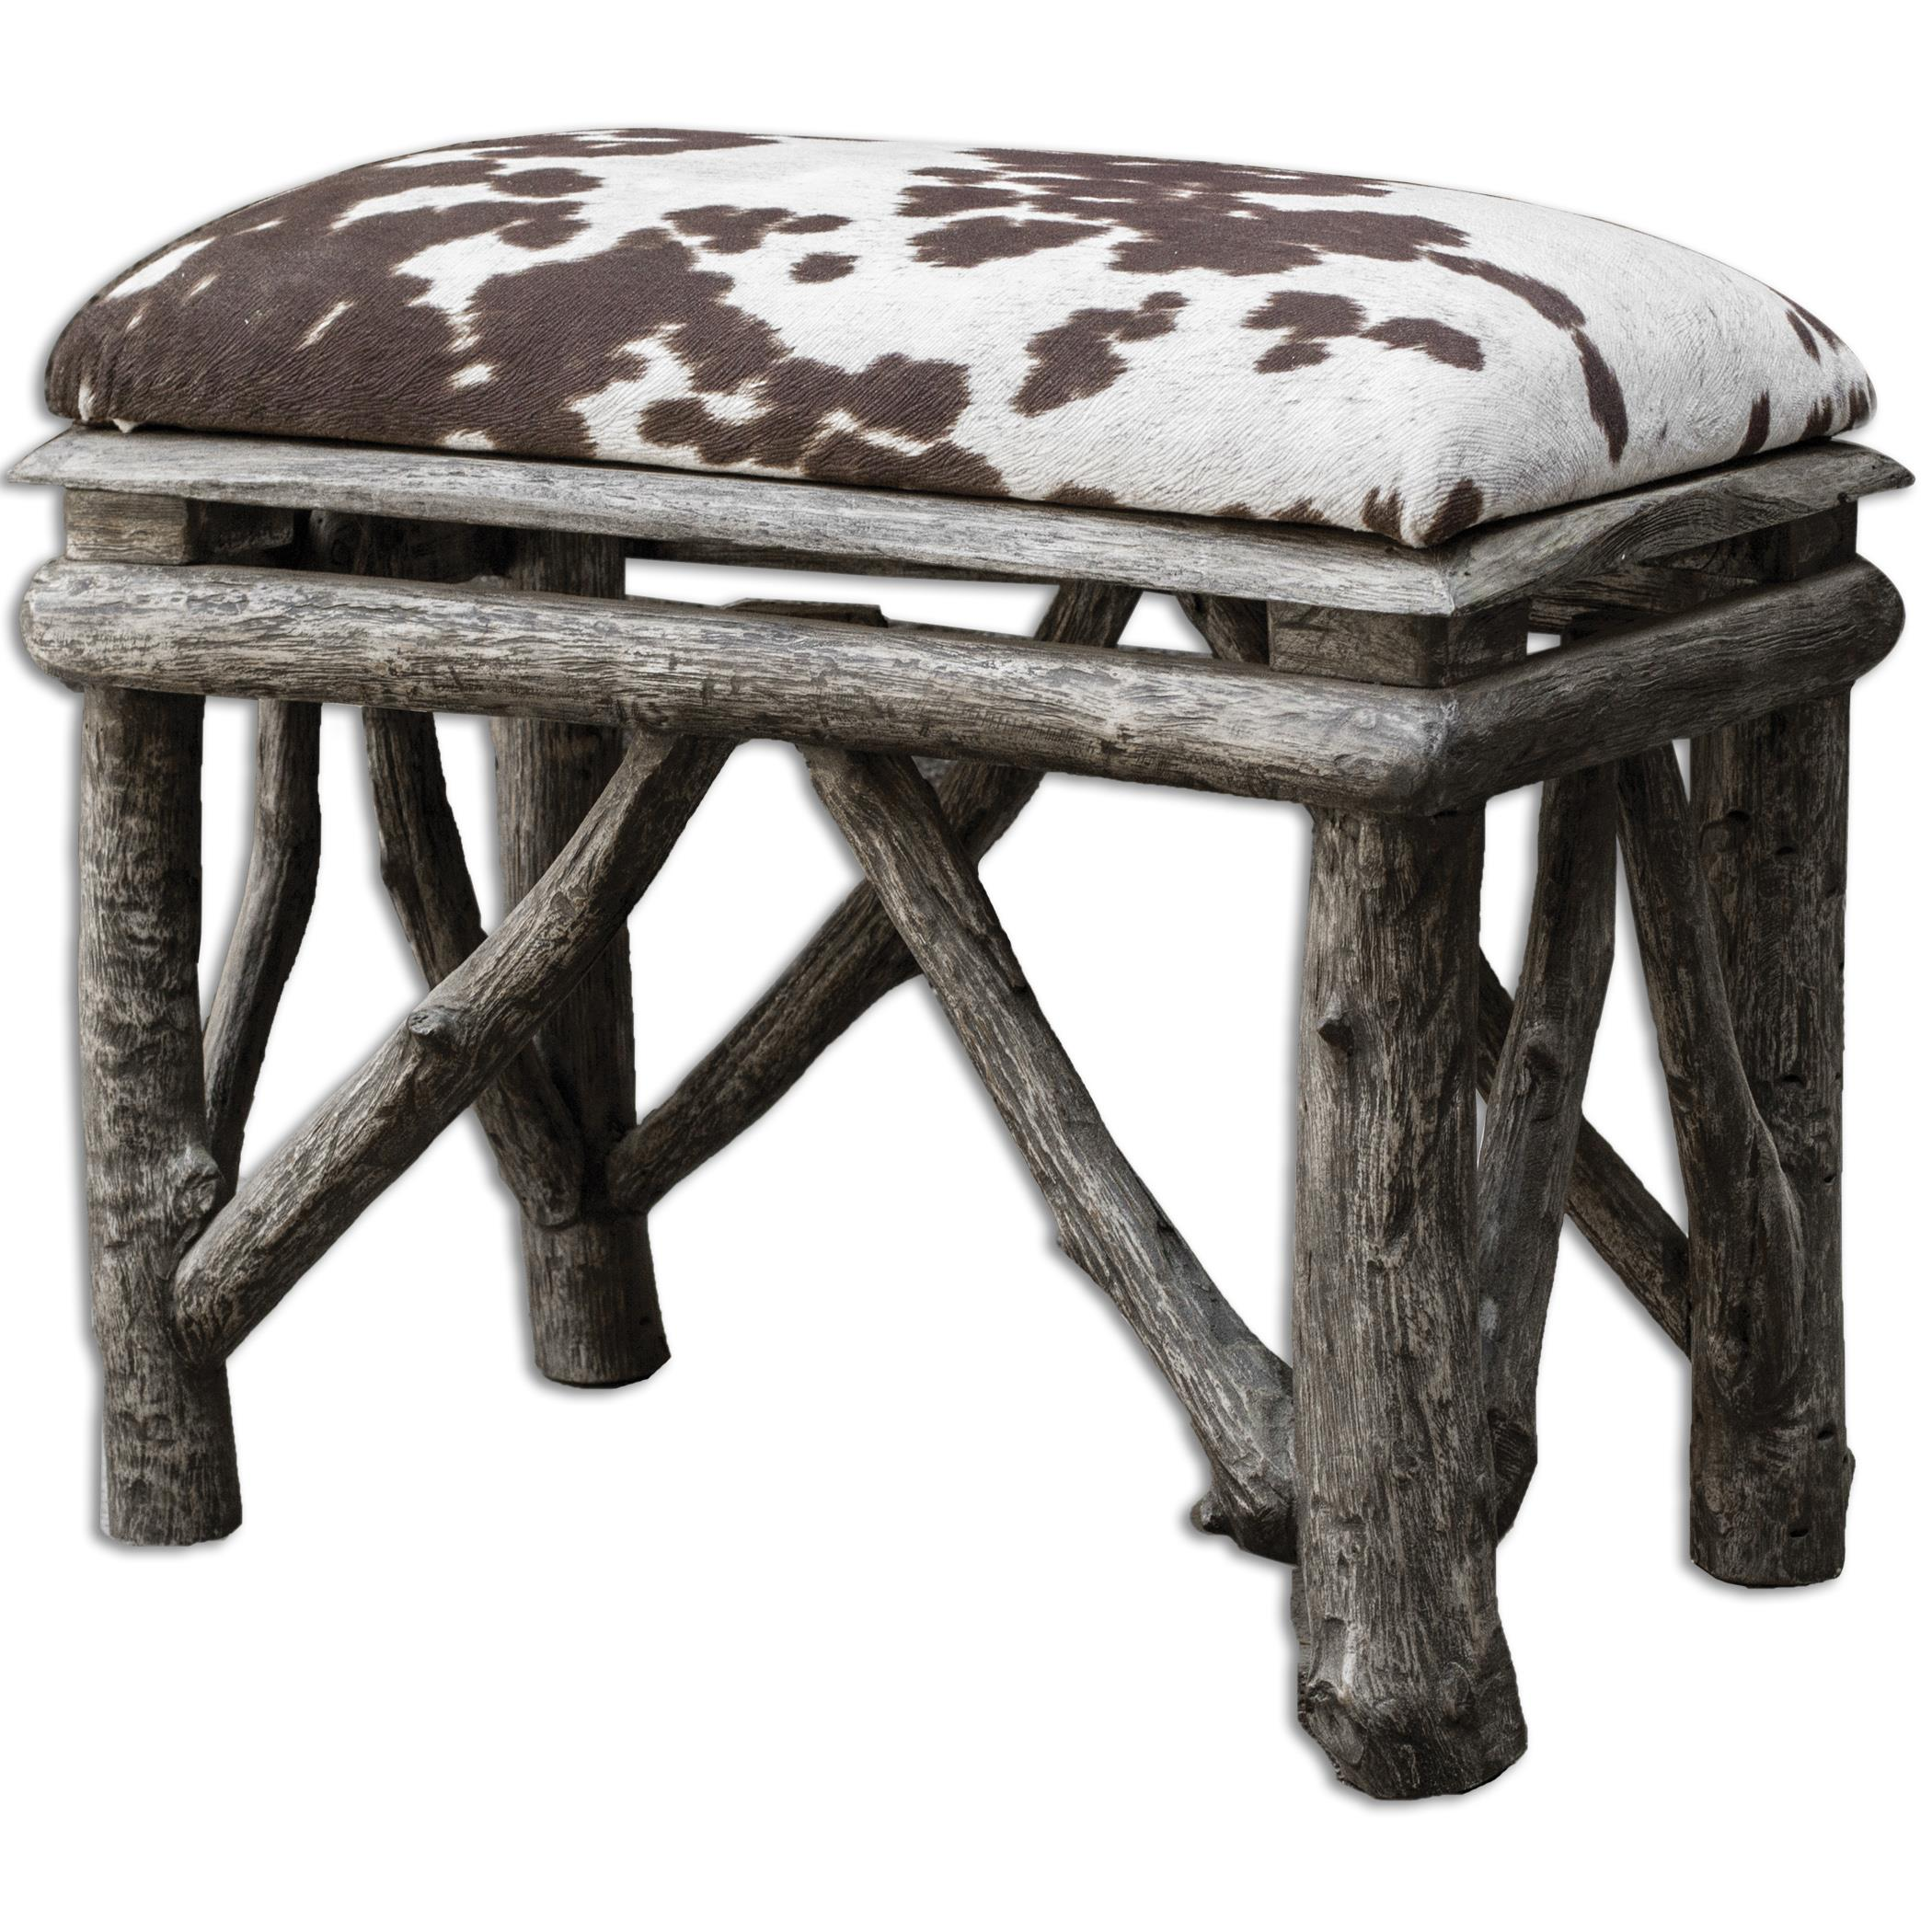 Accent Furniture - Benches Chavi Small Bench by Uttermost at Furniture Superstore - Rochester, MN